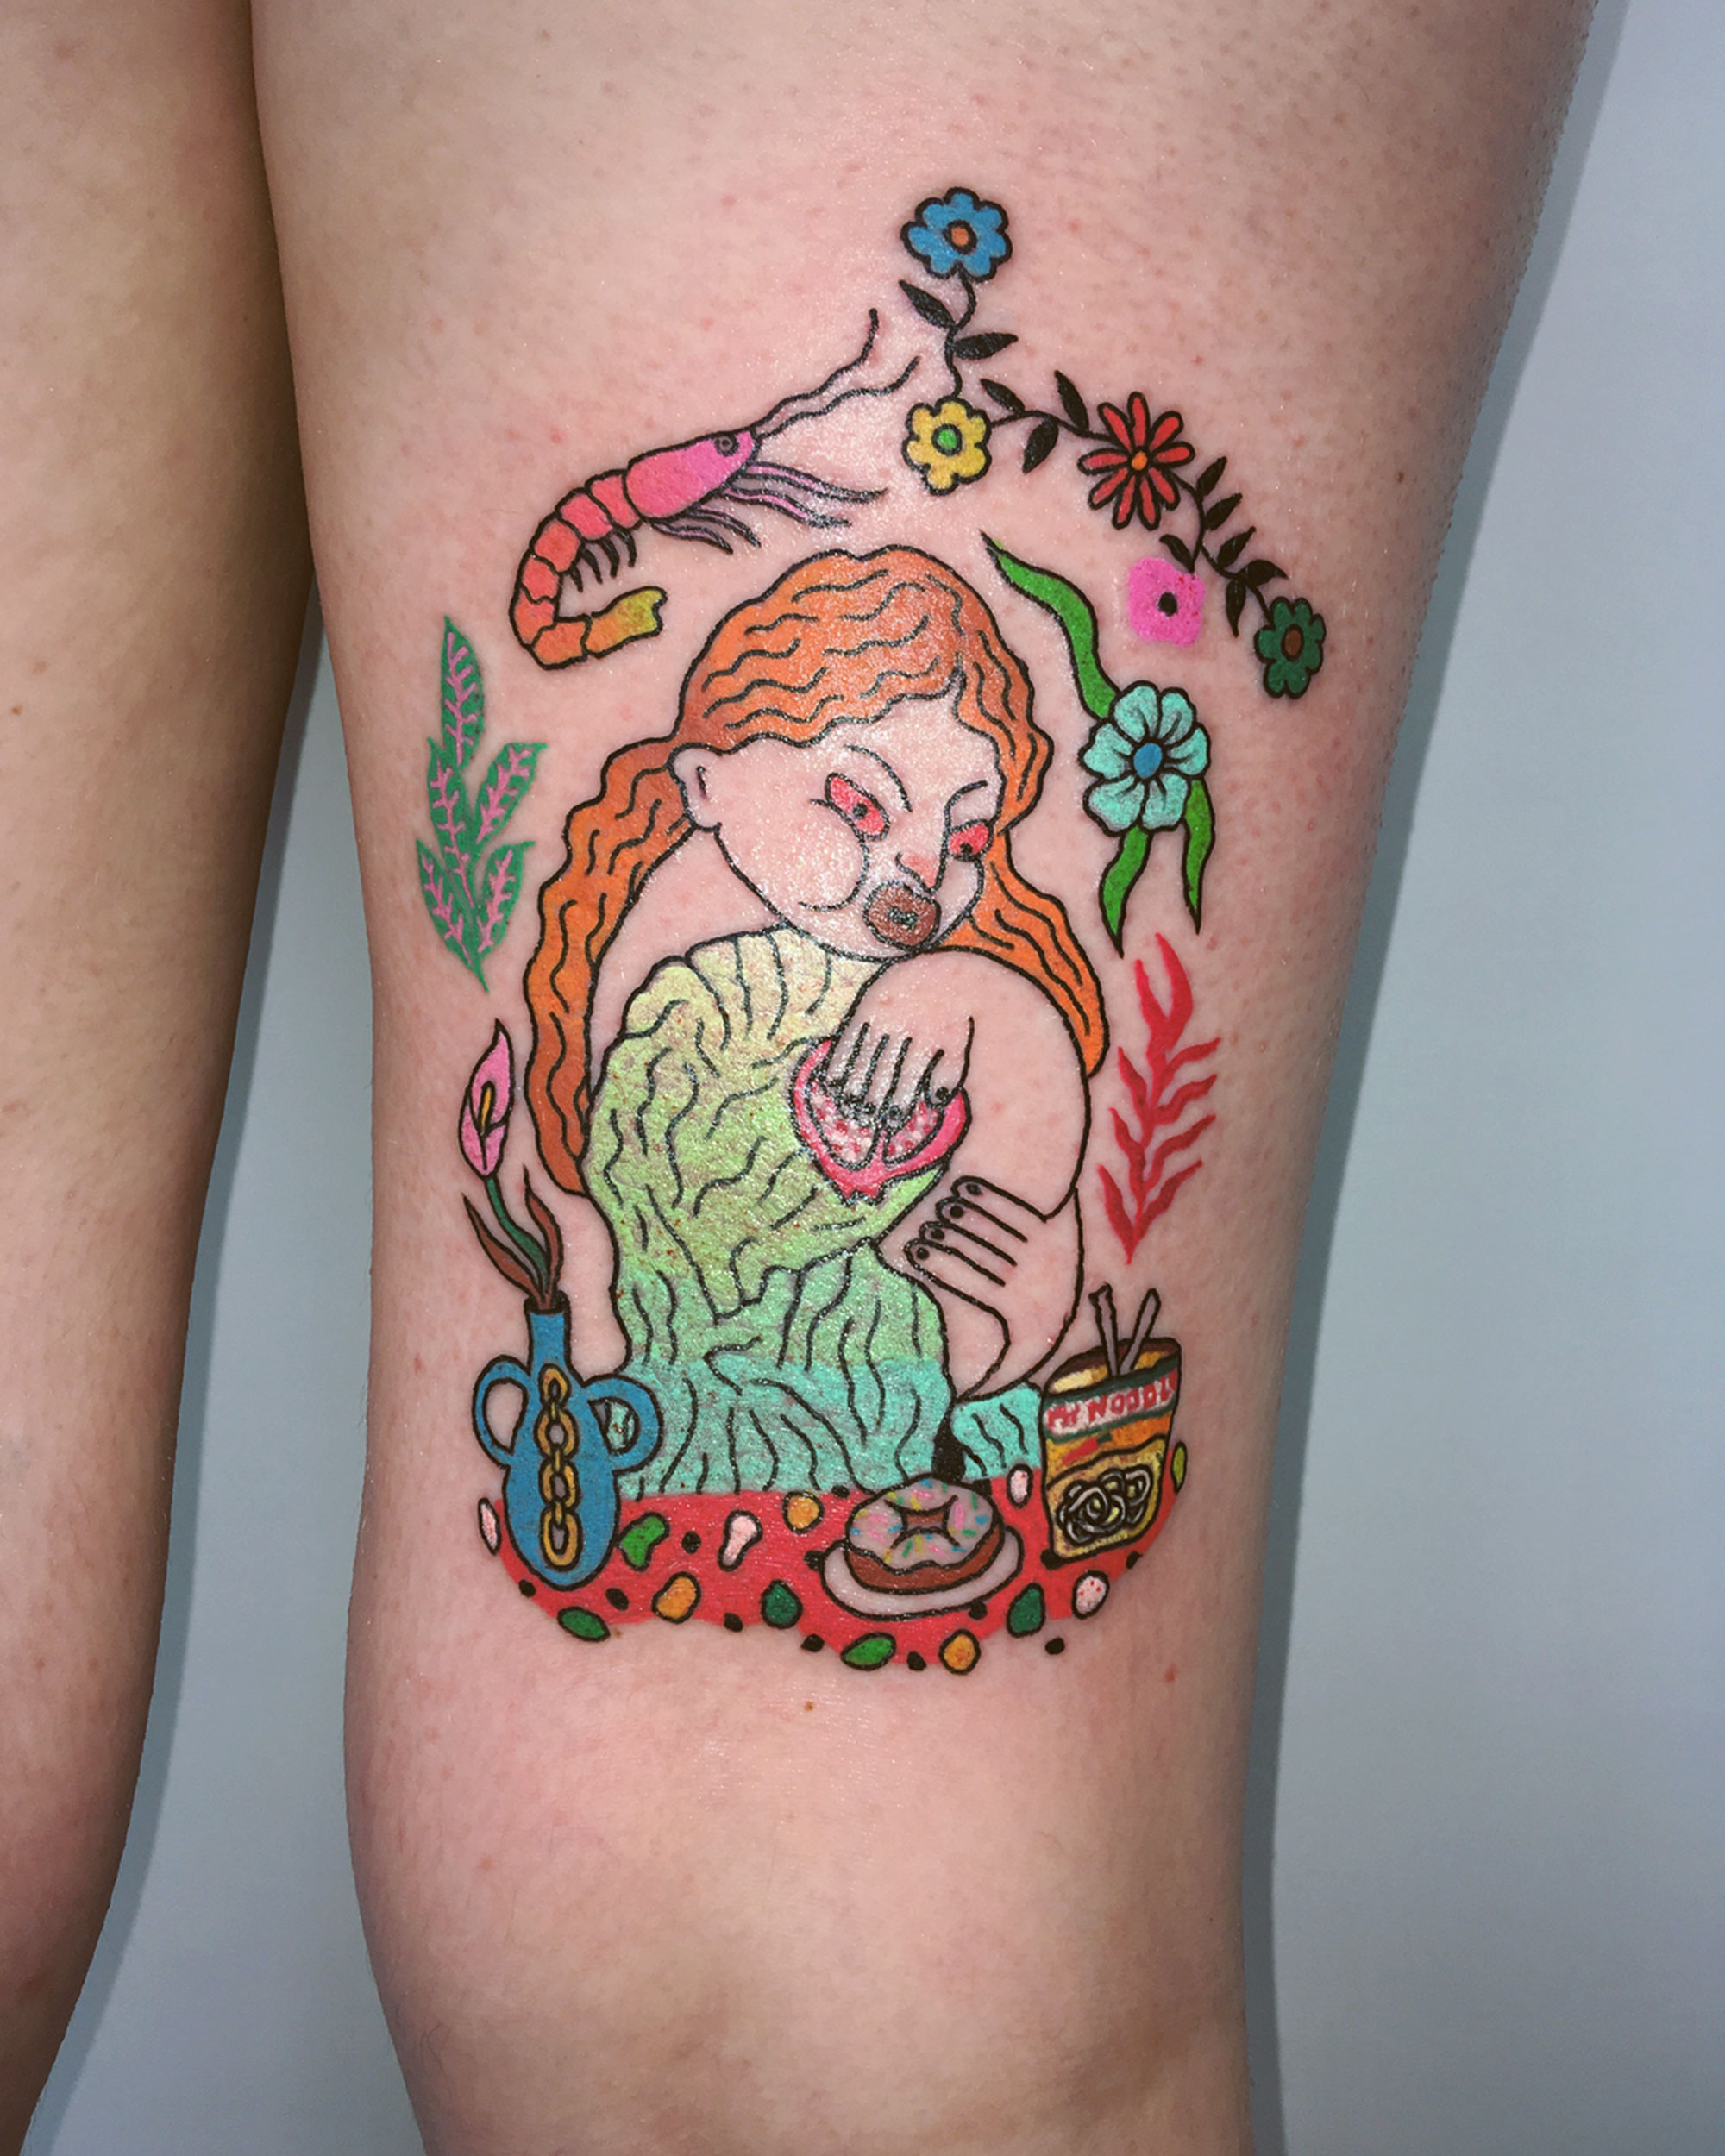 Raw and Empowering Queer Feminist Tattoos by Charline Bataille